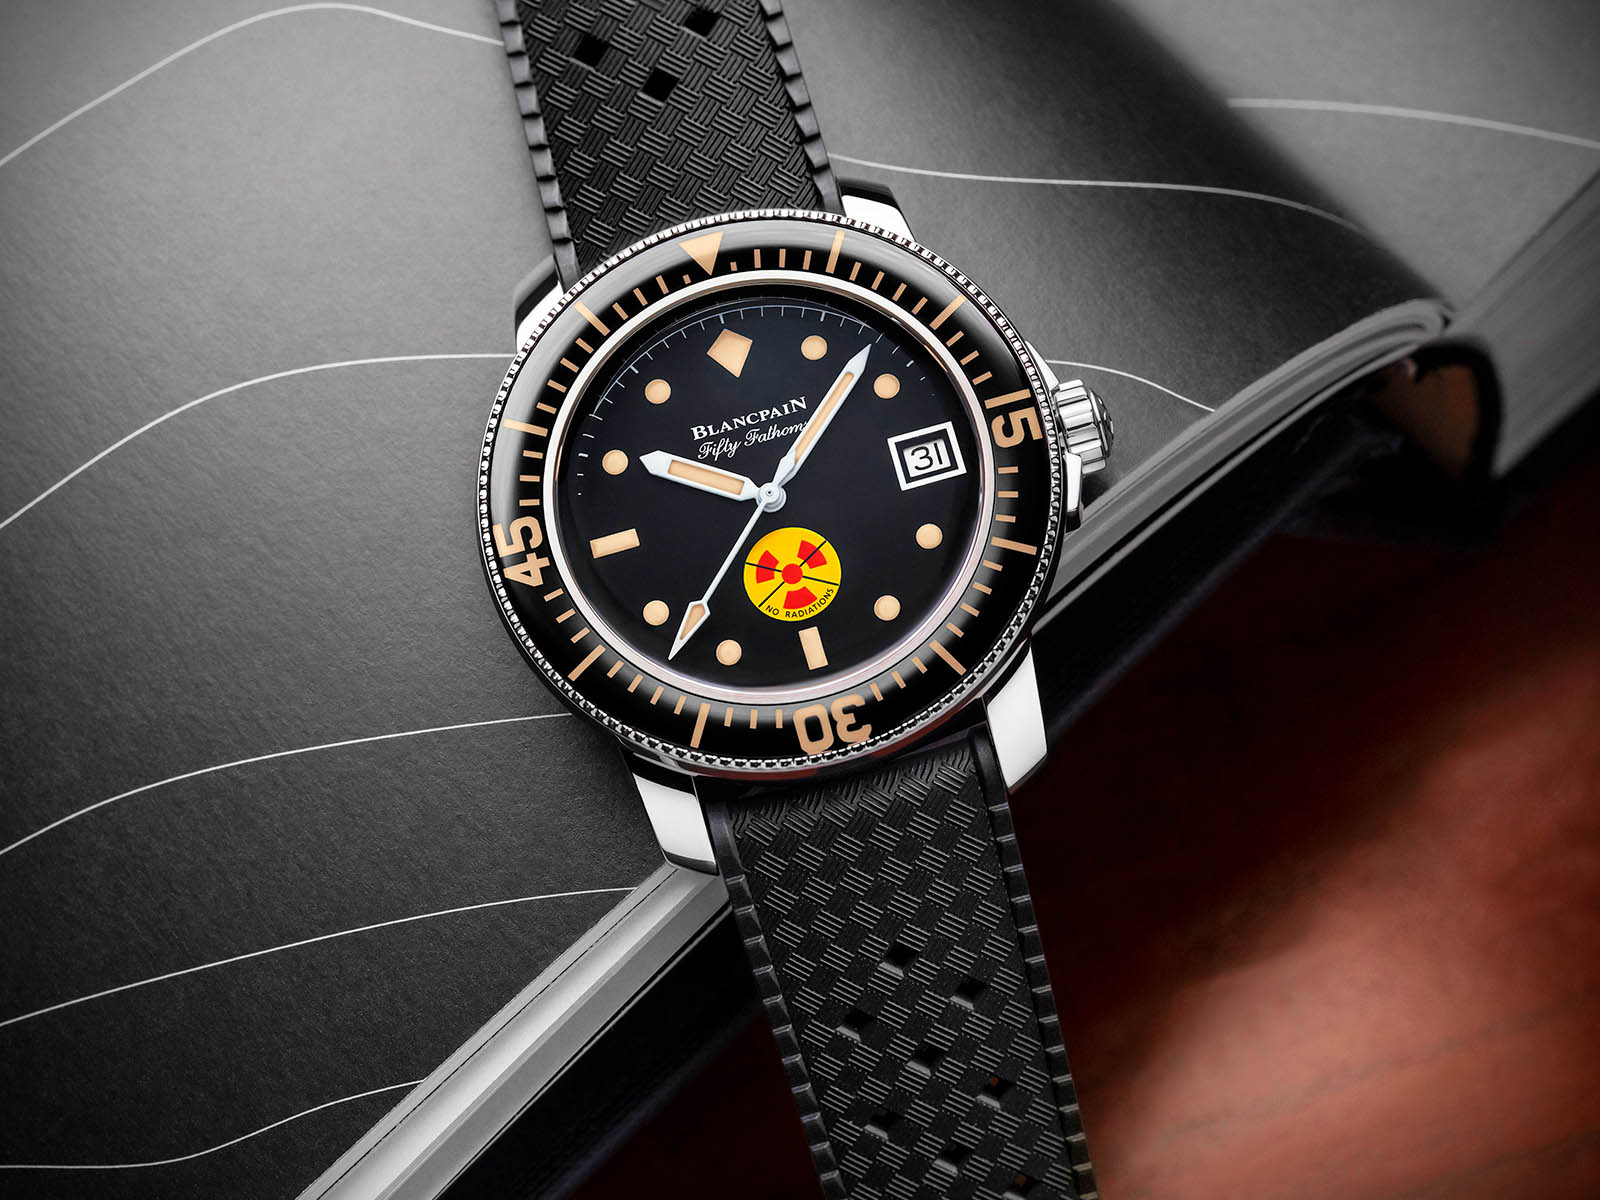 5008d-1130-b64a-blancpain-tribute-to-fifty-fathoms-no-rad-limited-edition-2.jpg